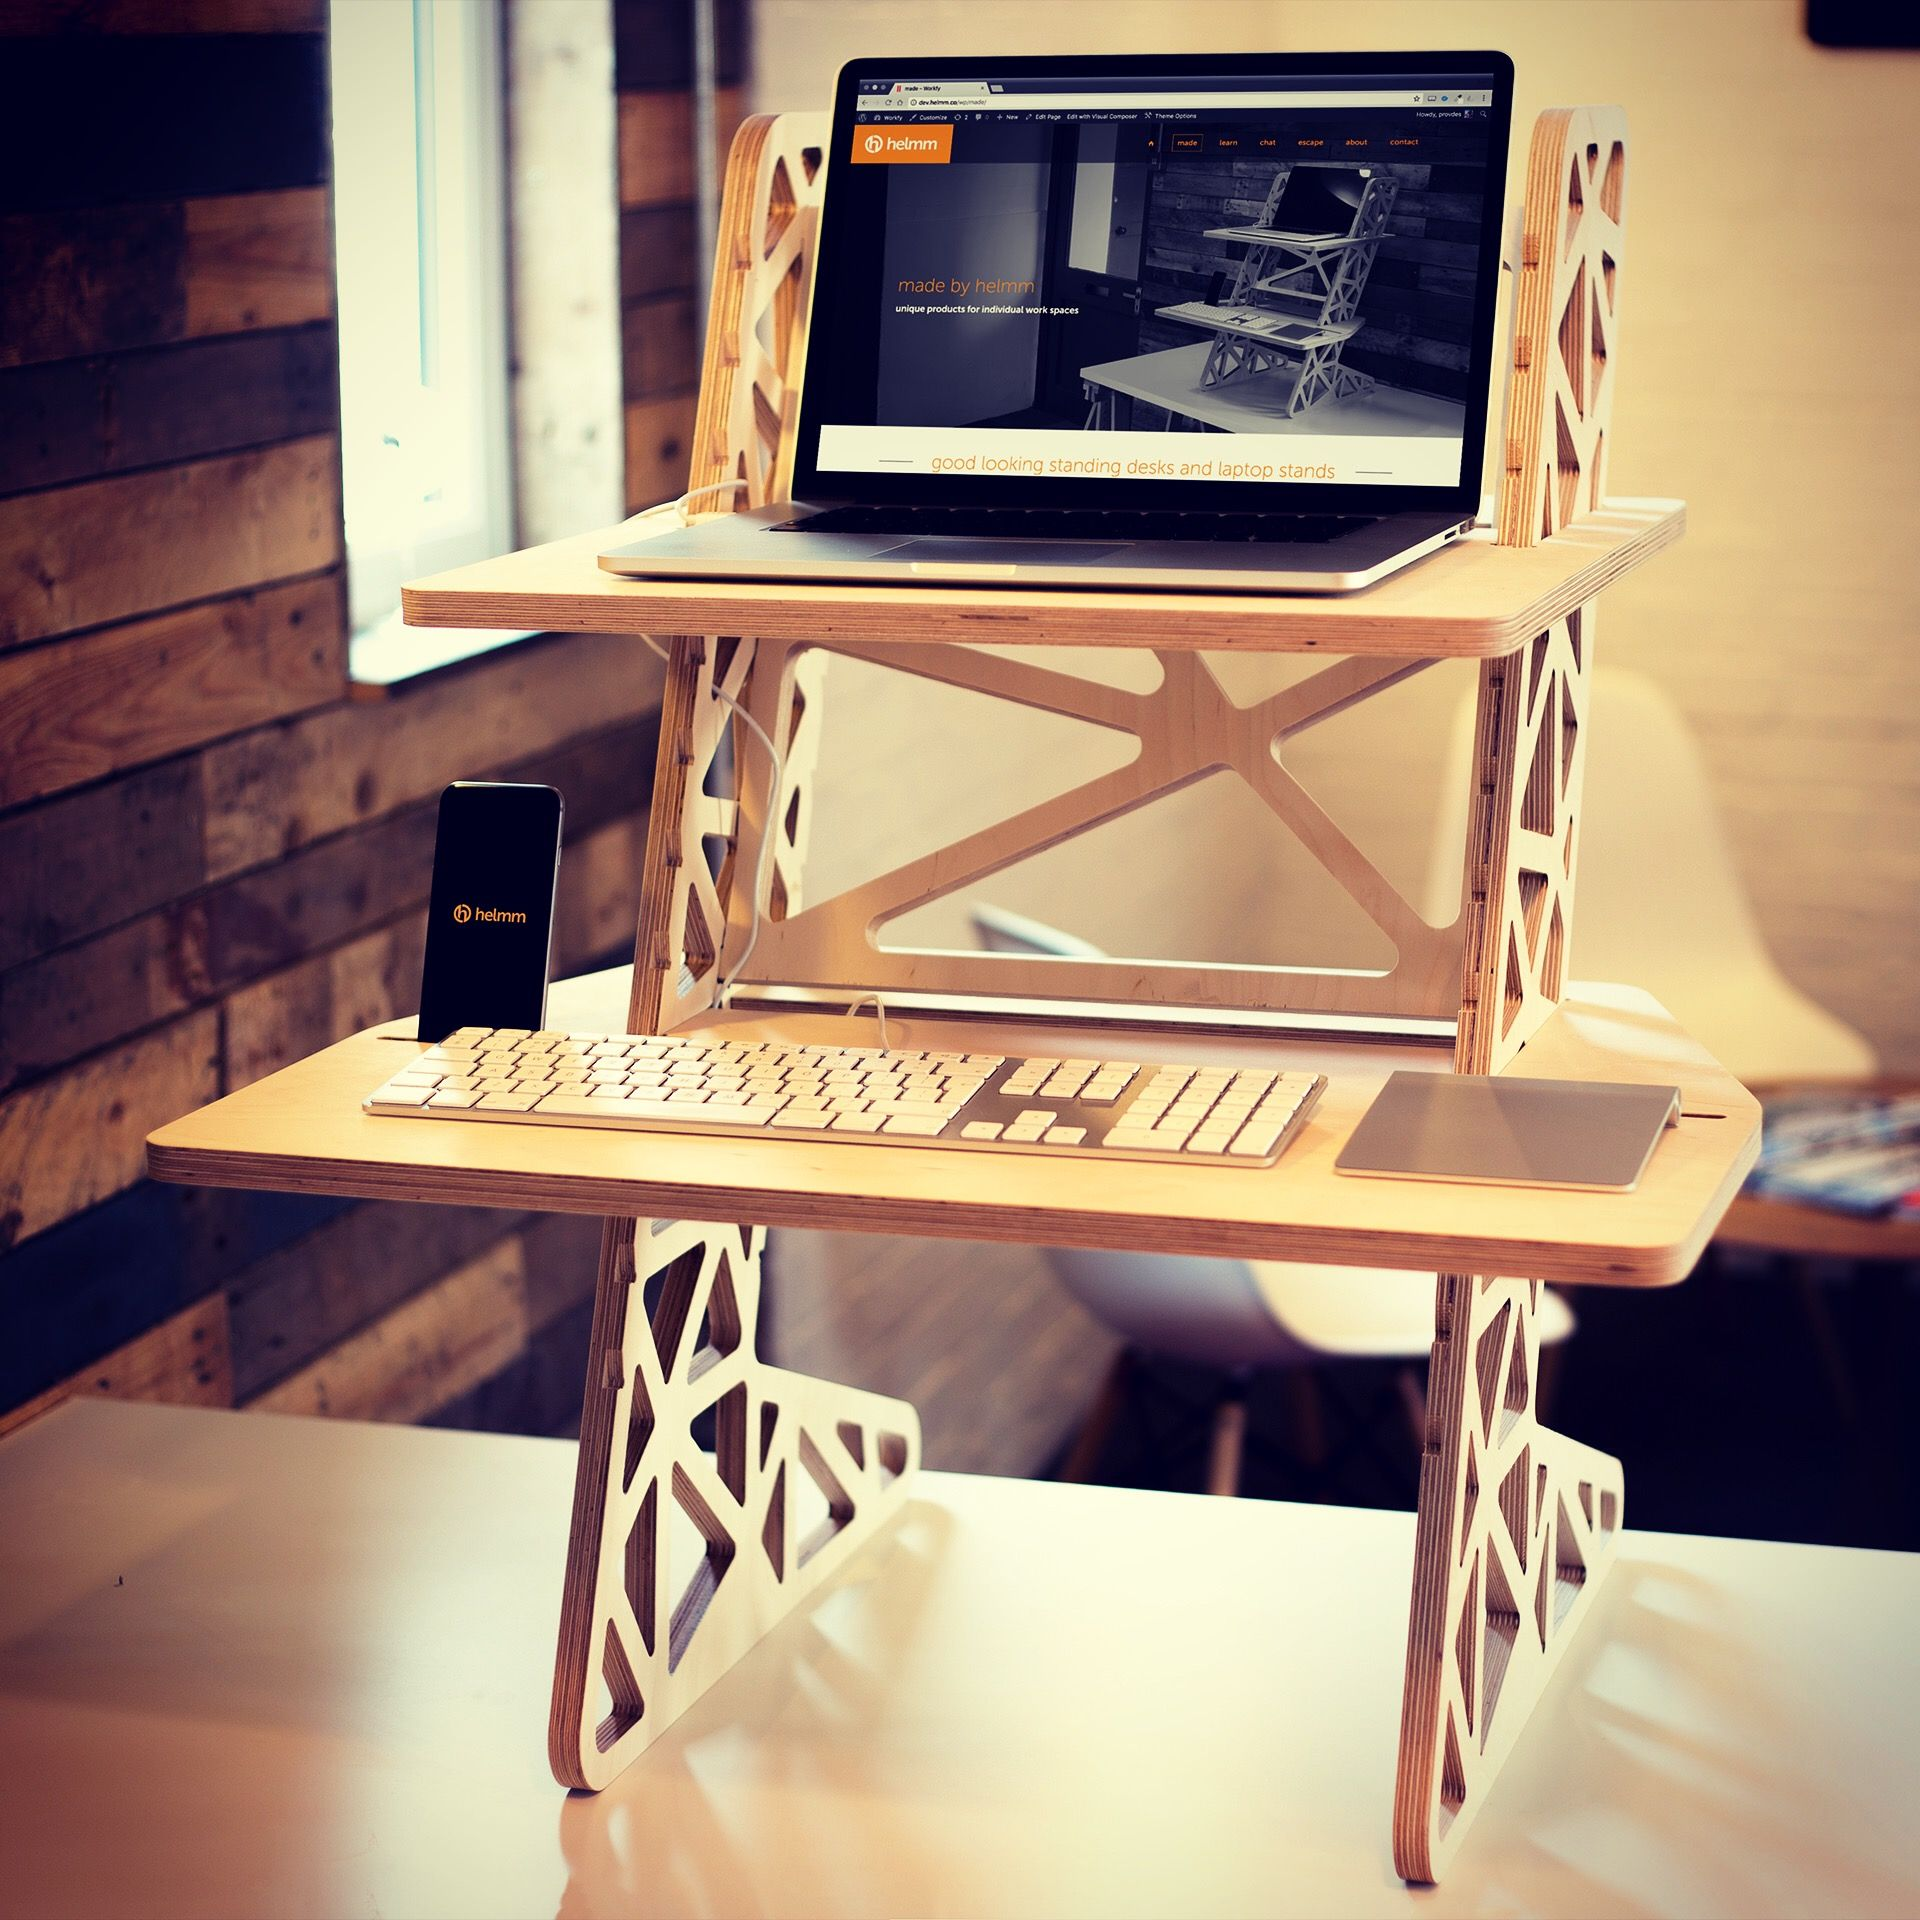 Plywood, adjustable height standing desk converter: £235